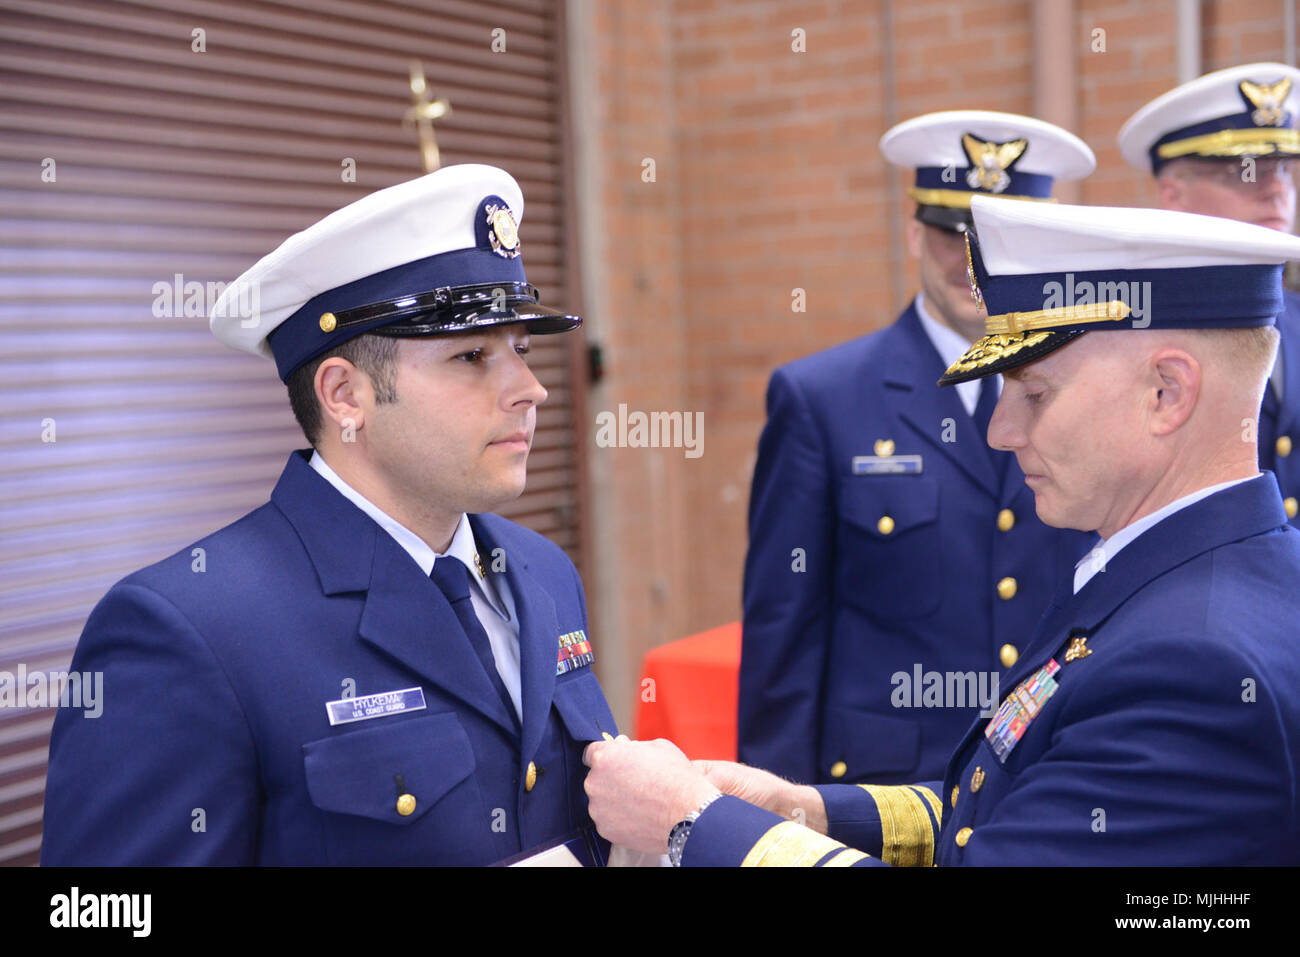 Rear Adm. David Throop, commander Coast Guard 13th District, clips the Coast Guard Medal onto Petty Officer 1st Class Jacob Hylkema, a boatswain's mate at Coast Guard Station Grays Harbor, during a ceremony held at the station's base in Westport, Wash., April 6, 2018.    The Coast Guard Medal is the 3rd highest award that a Coast Guardsman can be awarded during peacetime.    U.S. Coast Guard - Stock Image